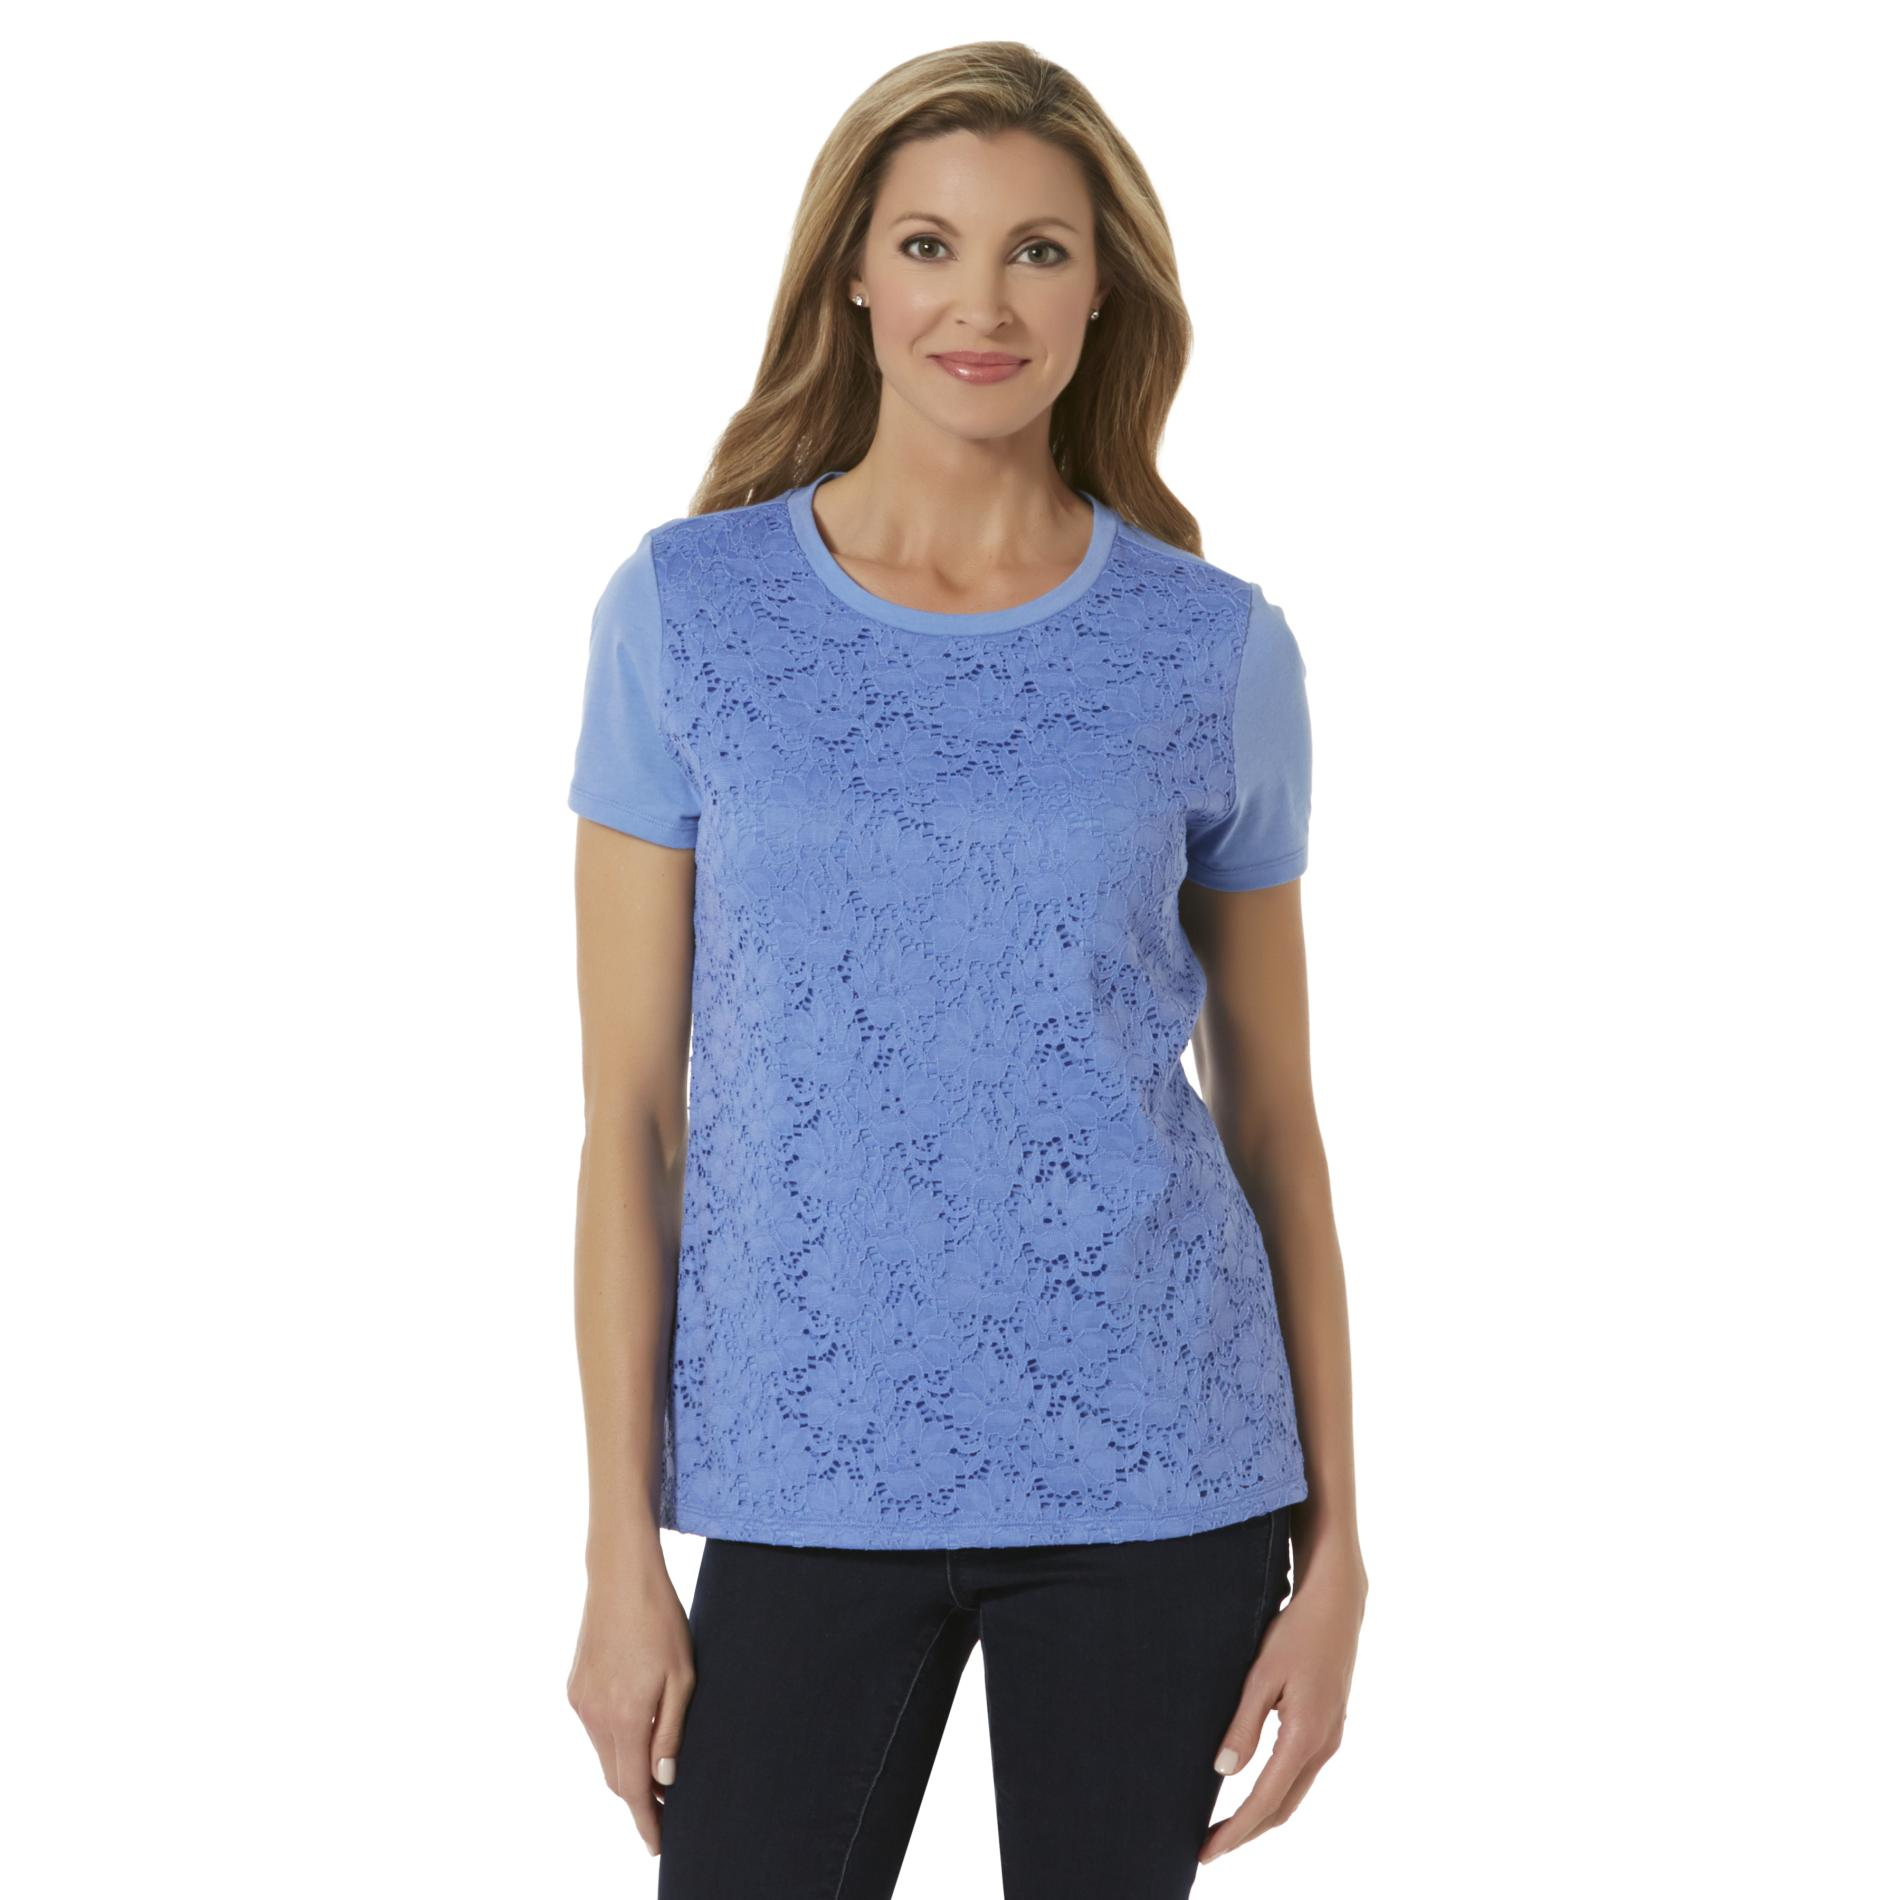 Basic Editions Women's Lace T-Shirt